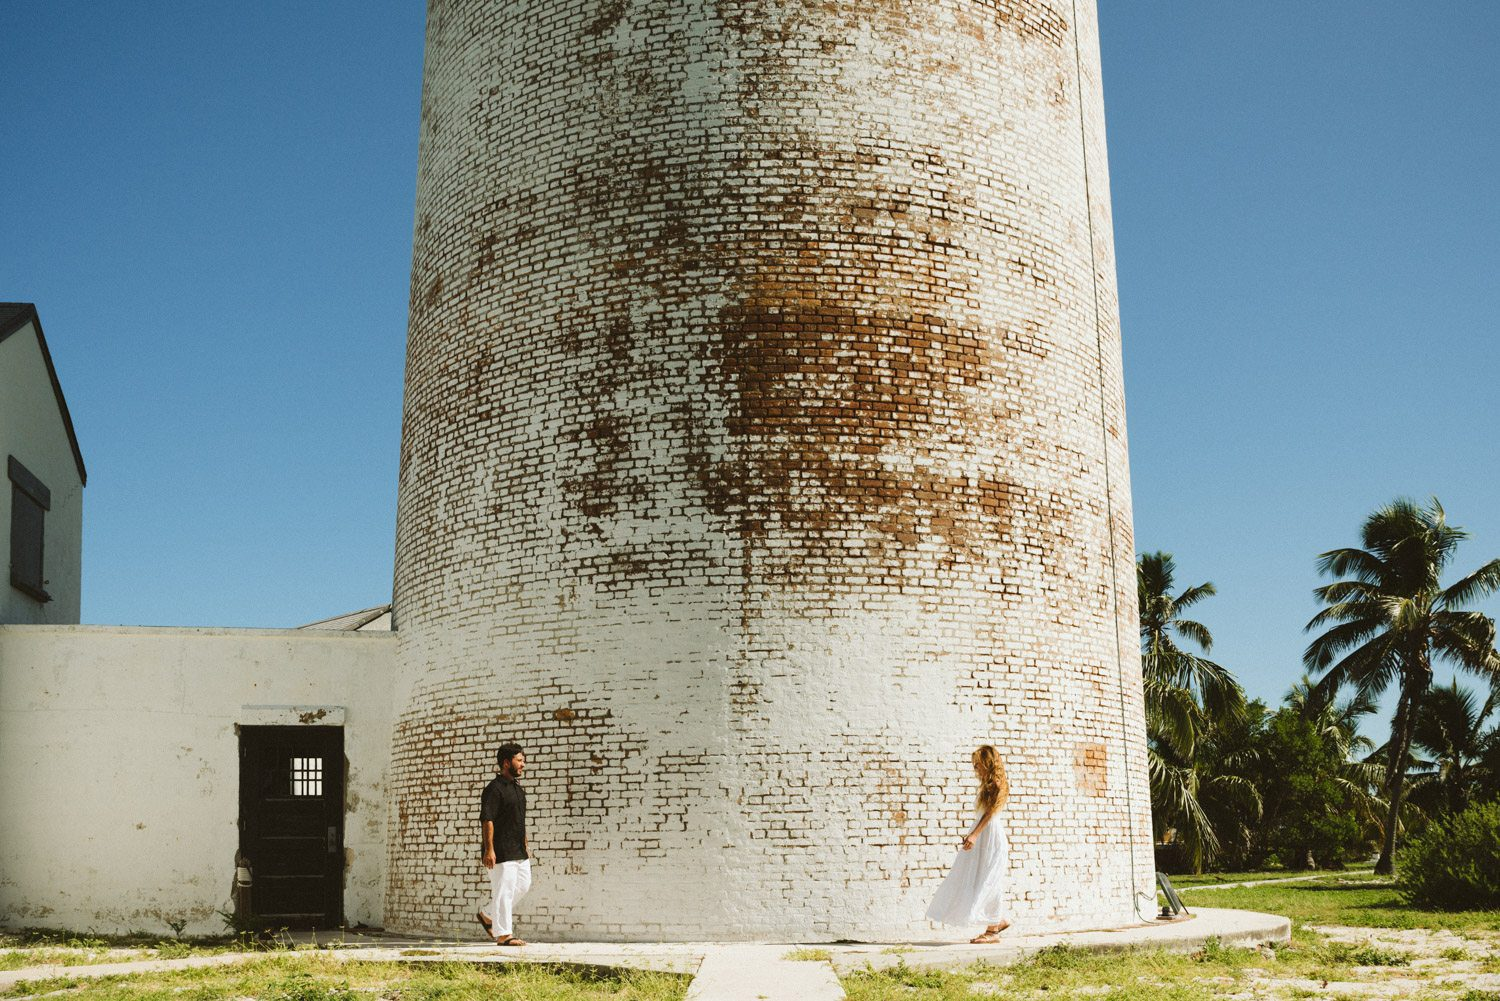 Katherine Oscar Engagement Photos Dry Tortugas 19 - Island Adventure Engagement Session - Dry Tortugas National Park and Fort Jefferson